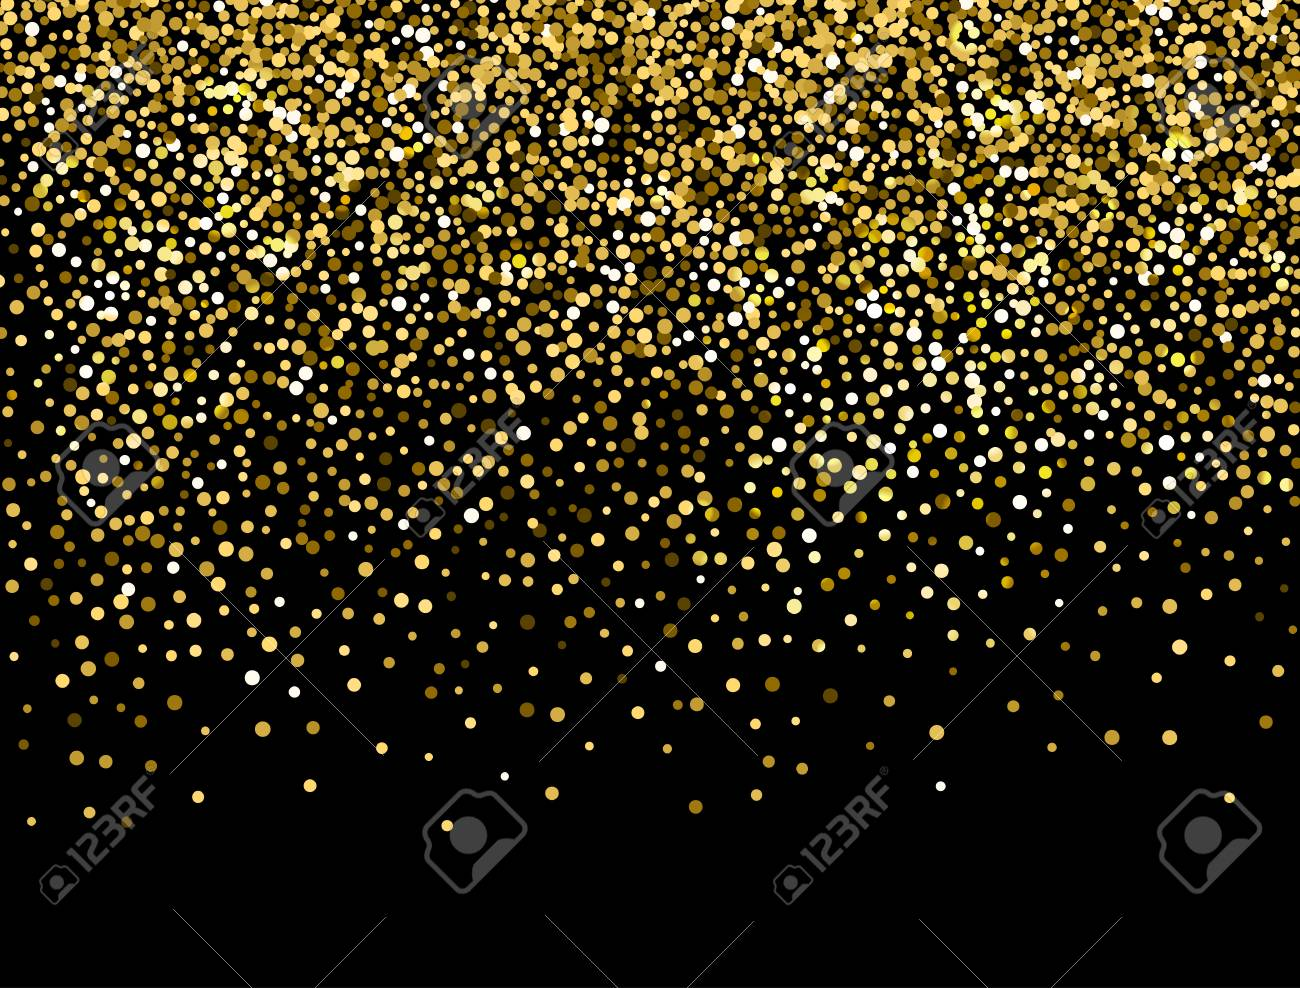 Gold Sparkles On Black Background. Gold Glitter Background. Royalty Free  Cliparts, Vectors, And Stock Illustration. Image 110549545.